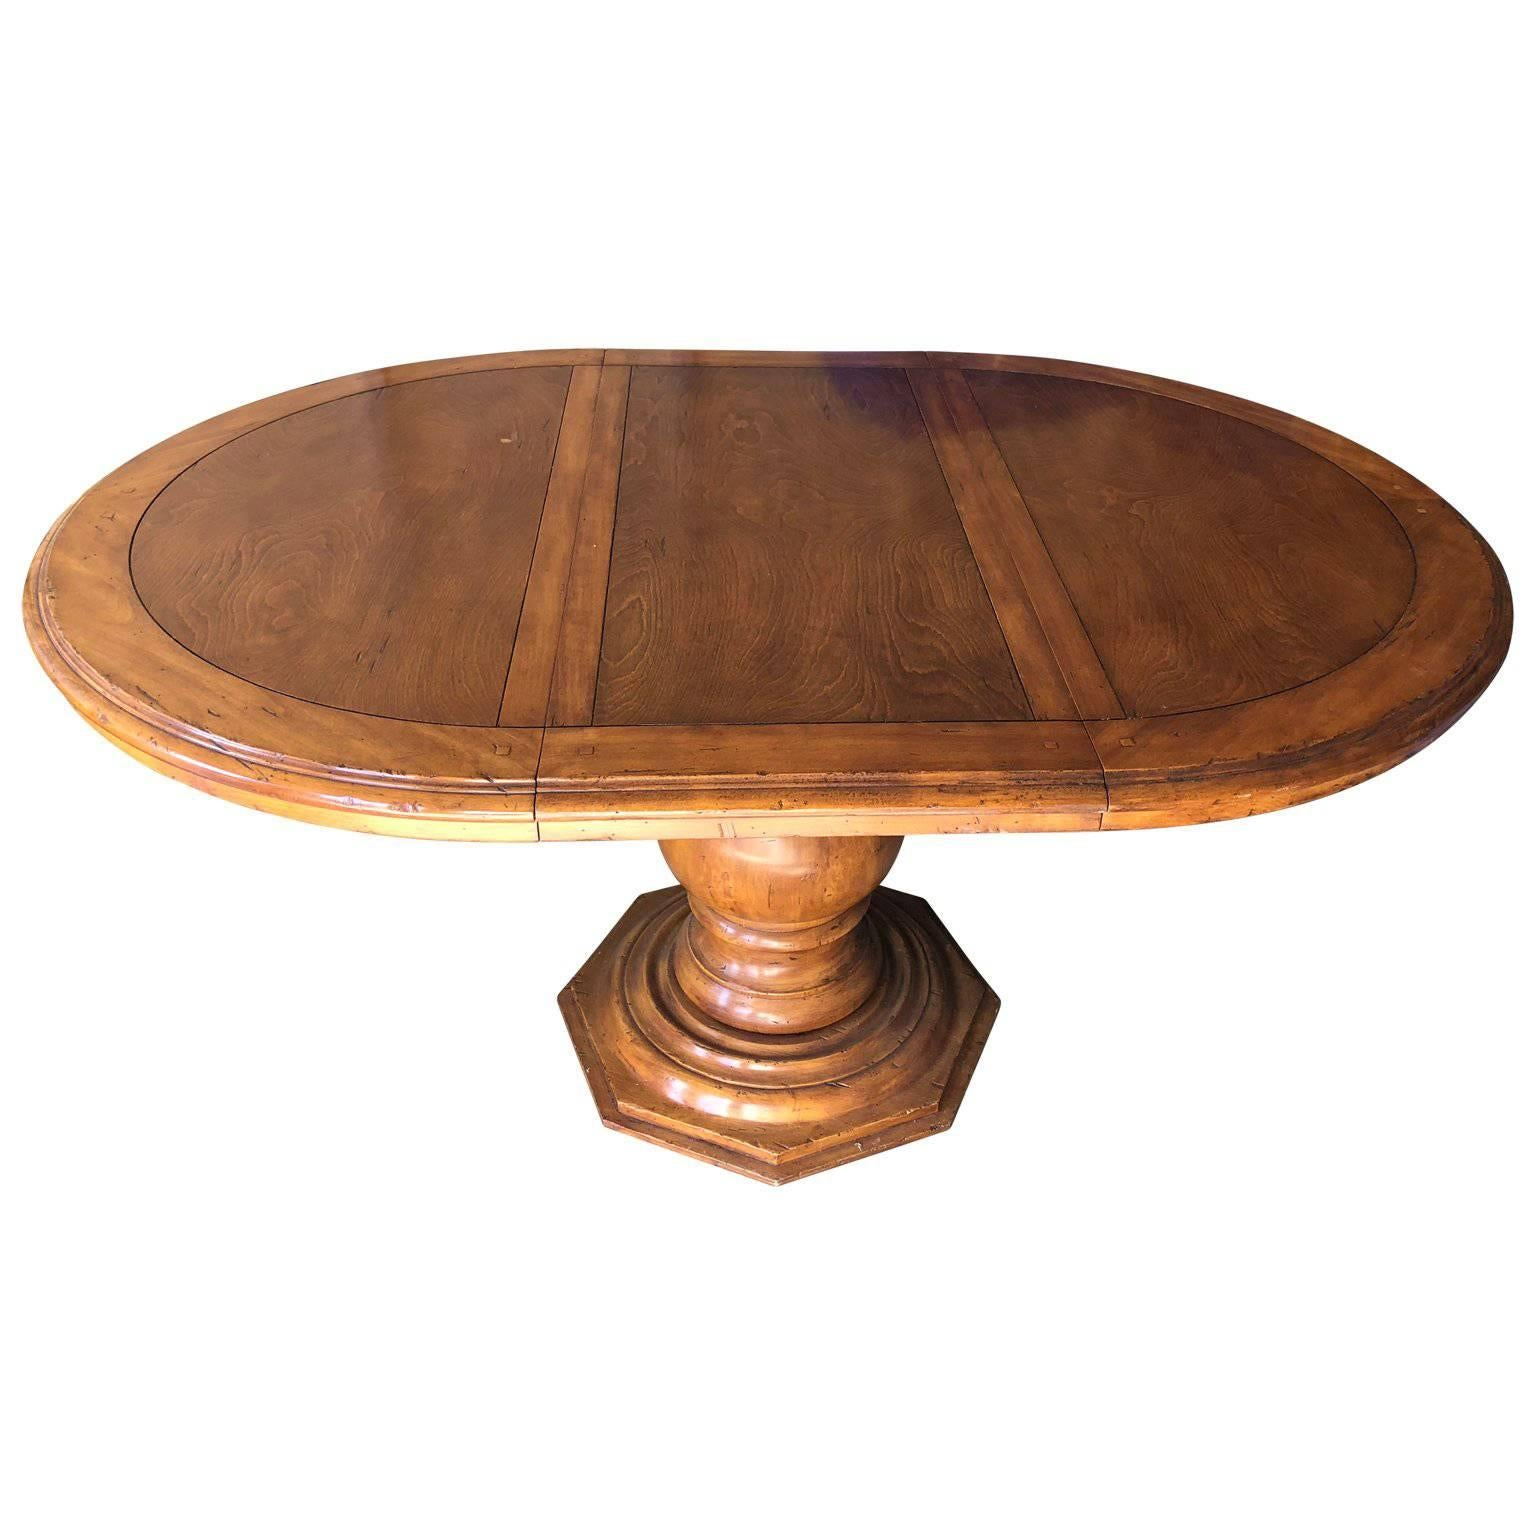 Large Wooden Baroque-Style Pedestal Dining Room Table by Fremarc